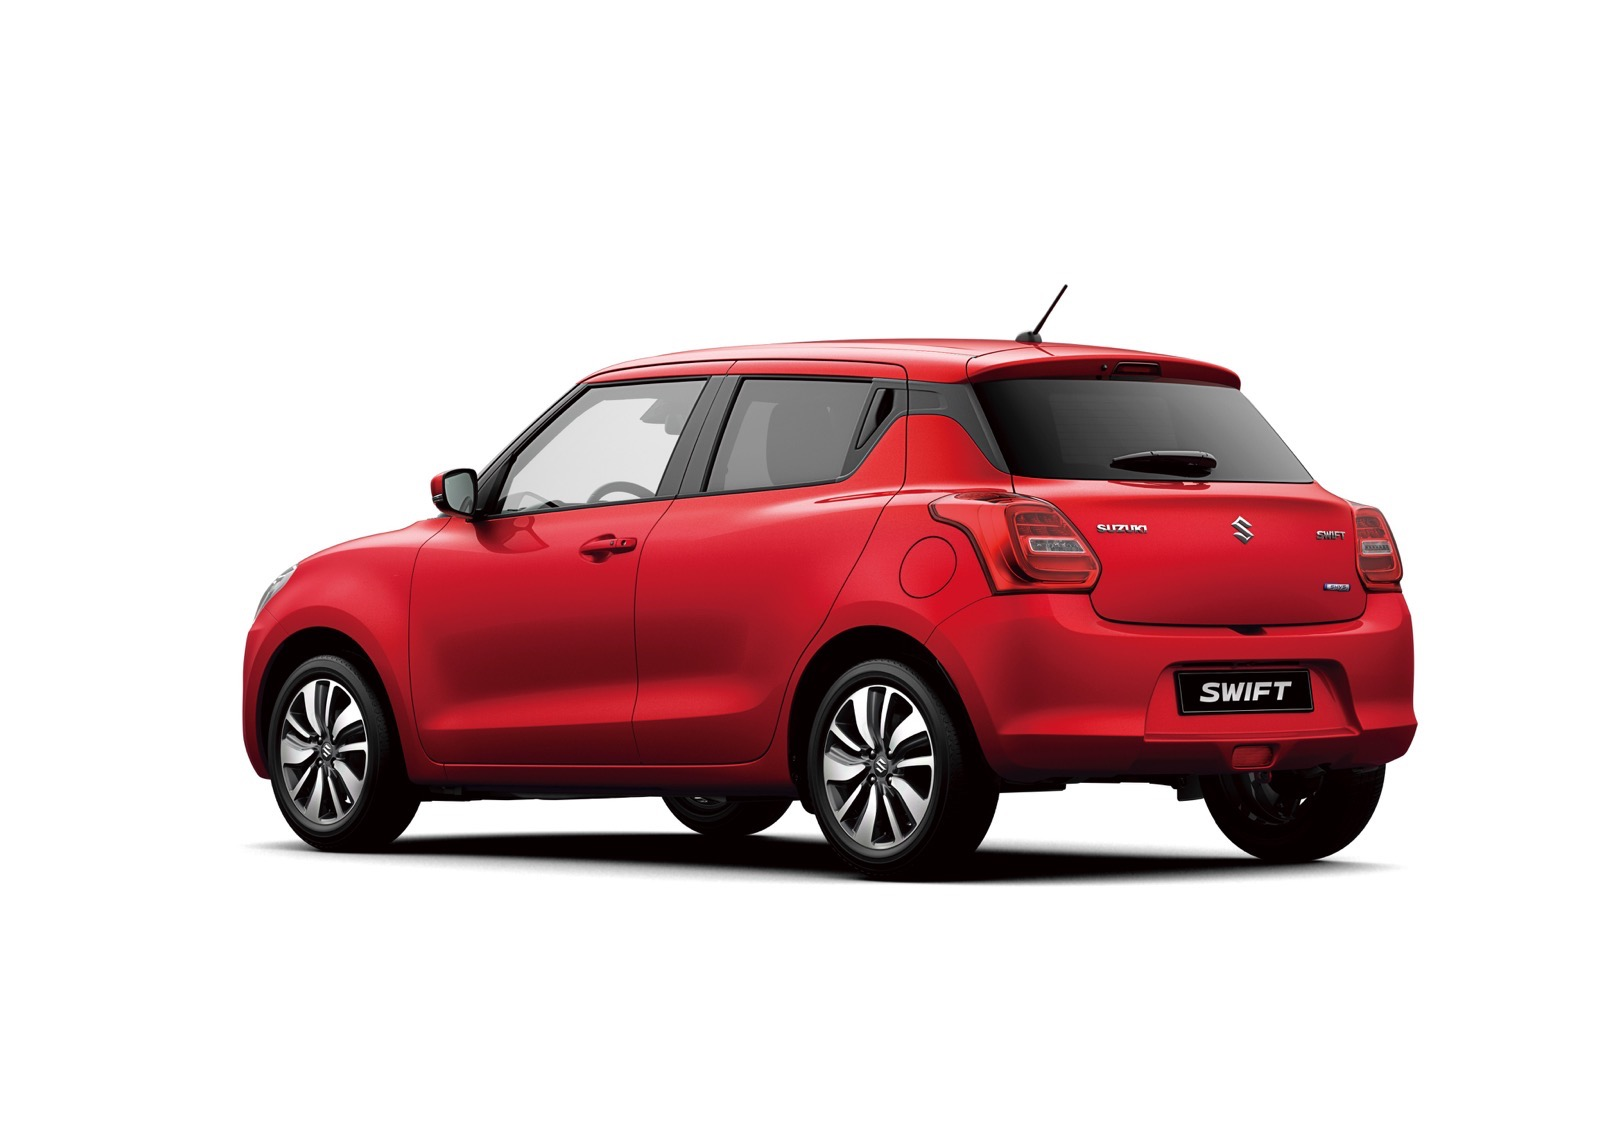 Suzuki_Swift_greek_presentation_67